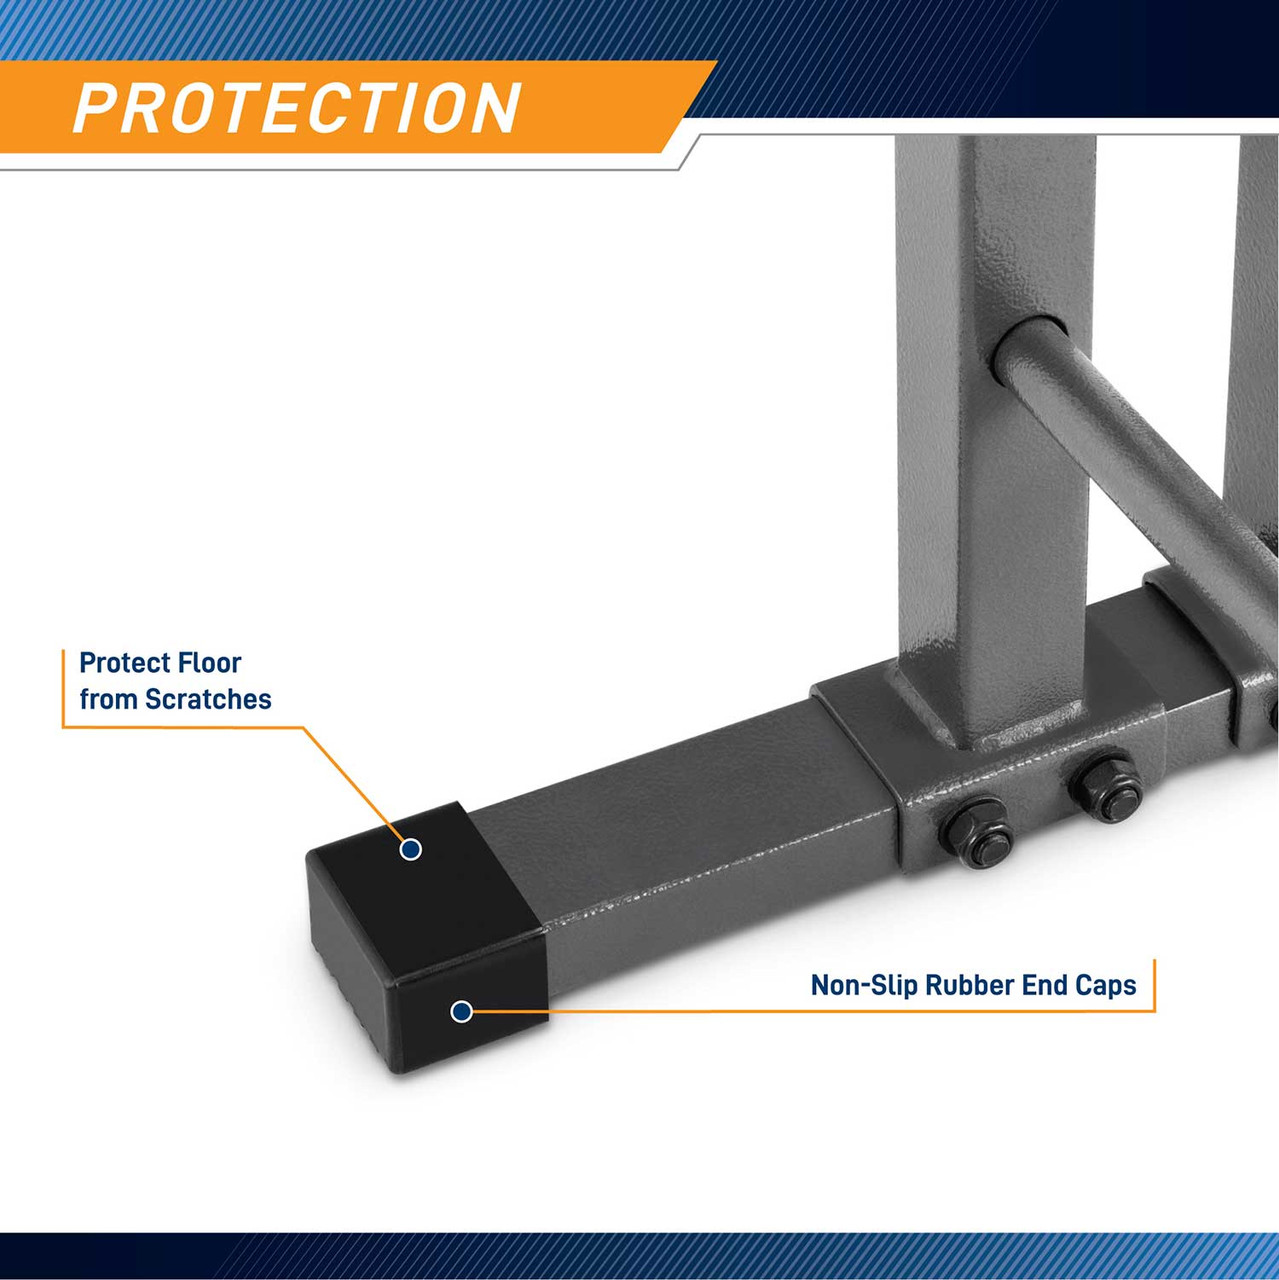 Having a scratch-free is a must in the accomplishment of safe and secure training. The Combo Weight Rack from Marcy is specially designed with four rubber end caps to protect your floor from any possible damages.